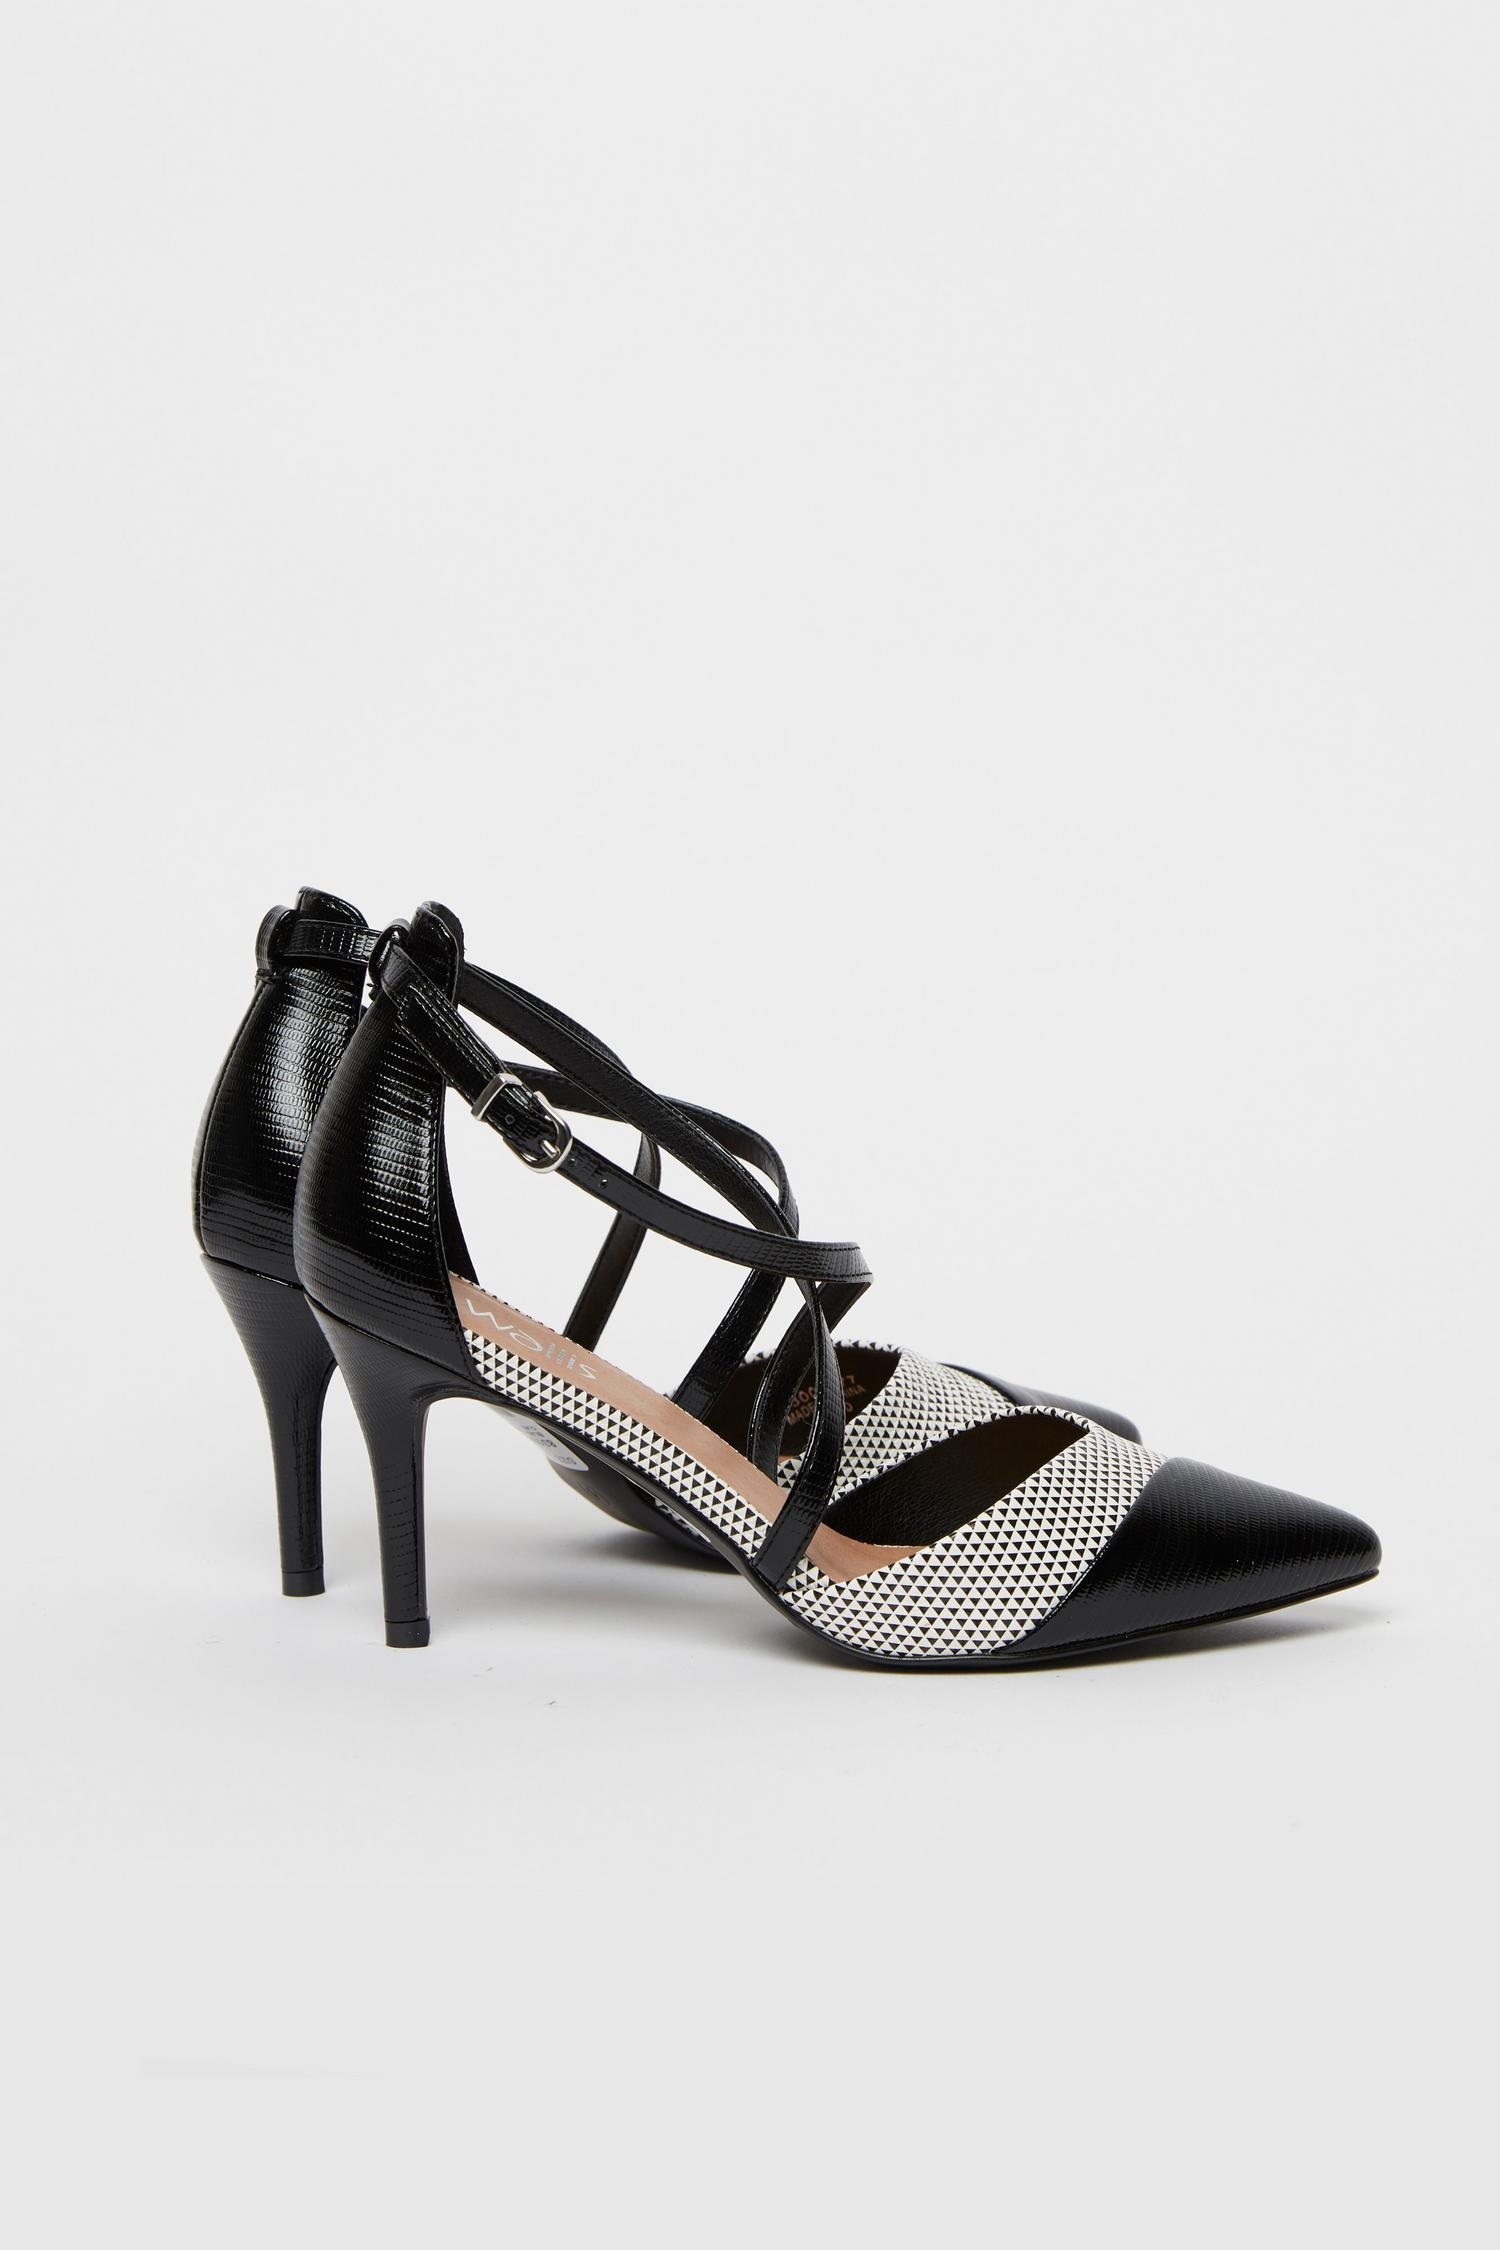 585 Monochrome Cross Strap Heels image number 1